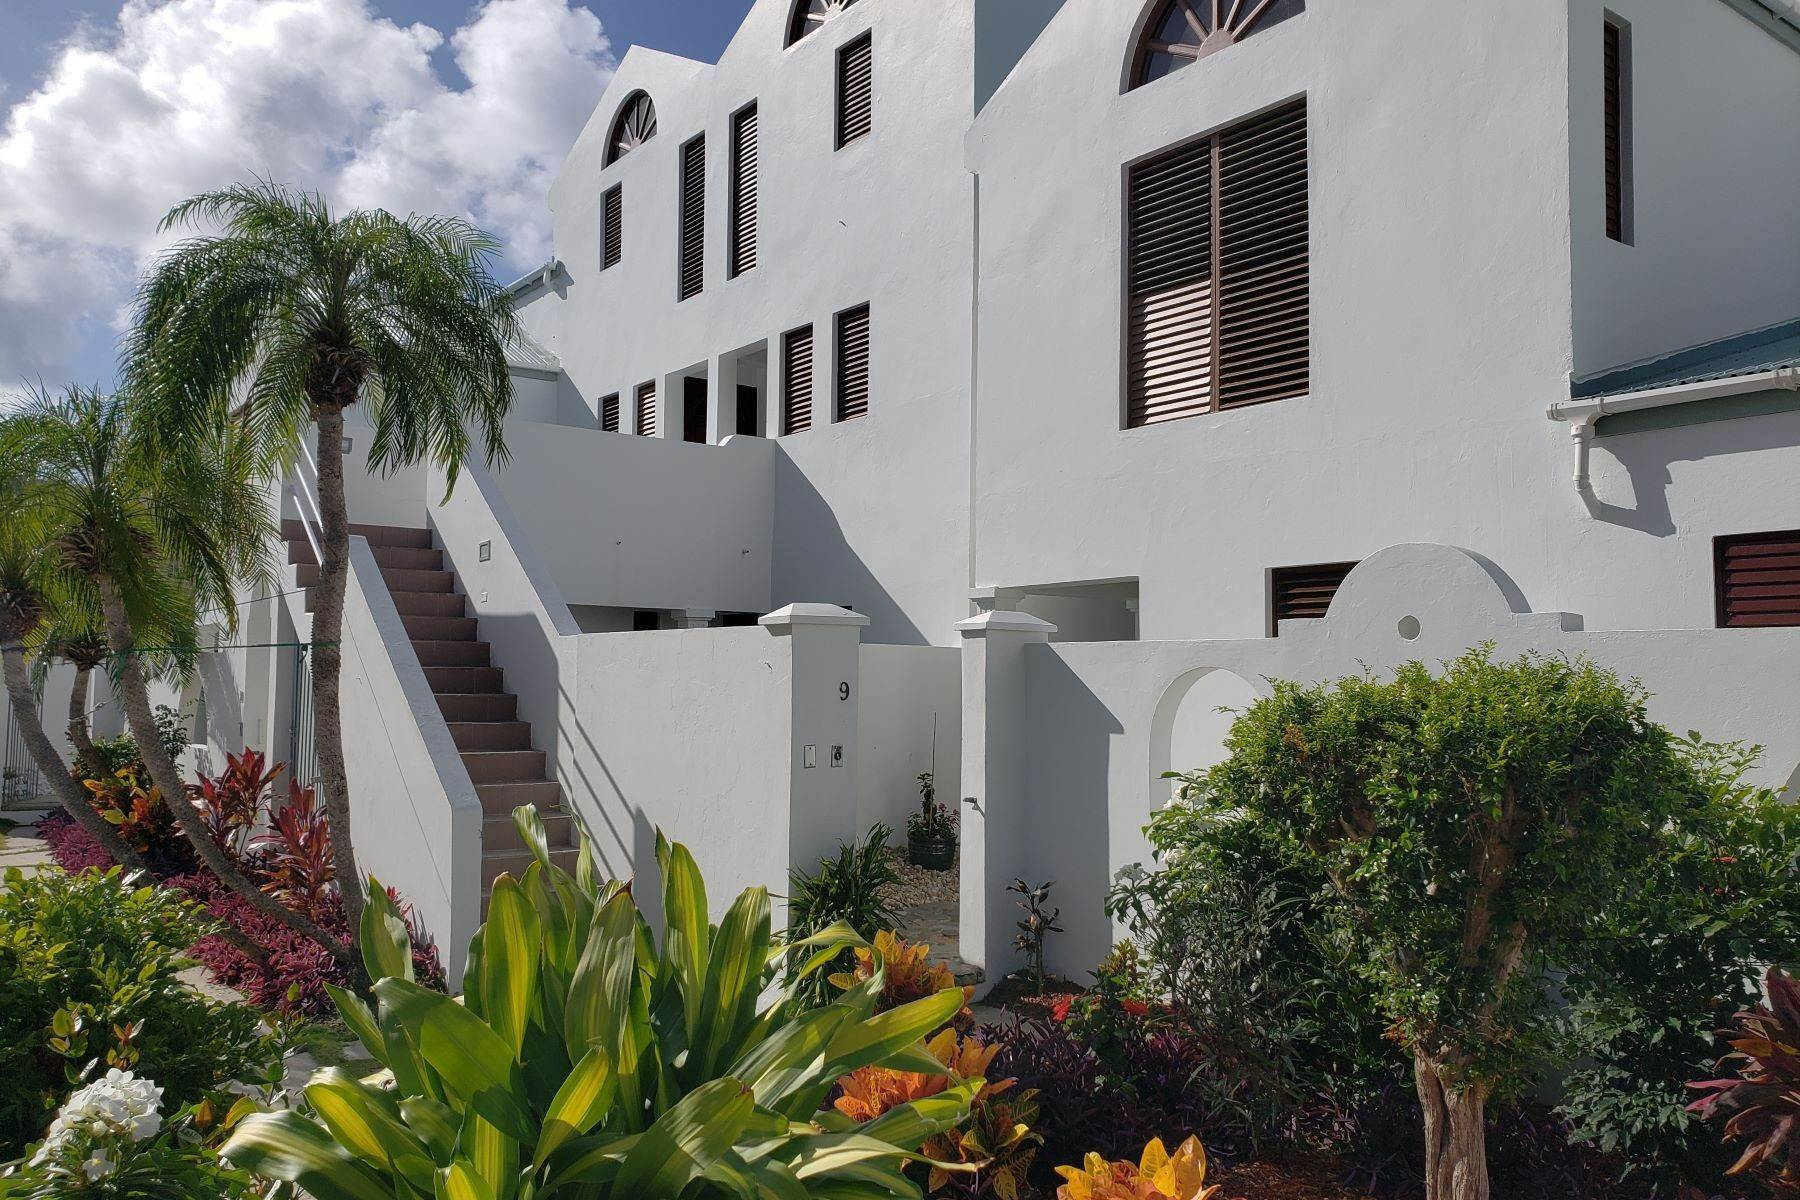 Multi-Family Homes for Sale at Estate House #9 Road Town, Tortola British Virgin Islands